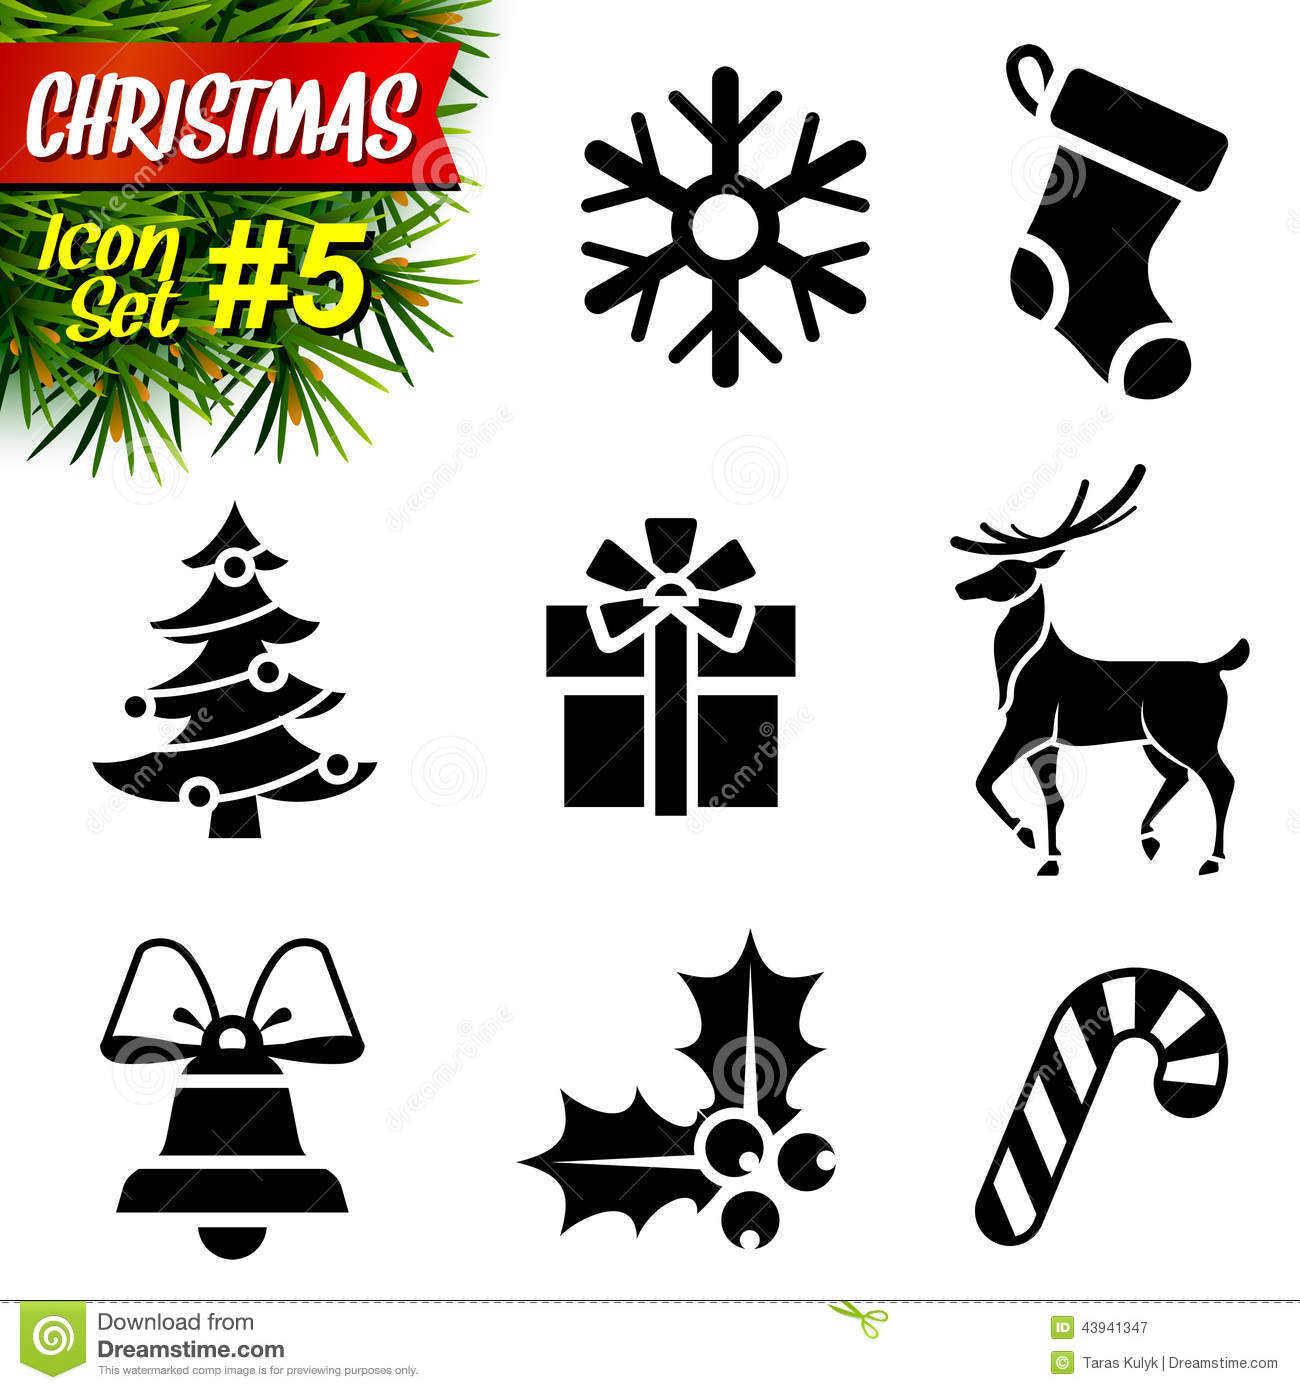 11 Icons Black And White Christmas Images